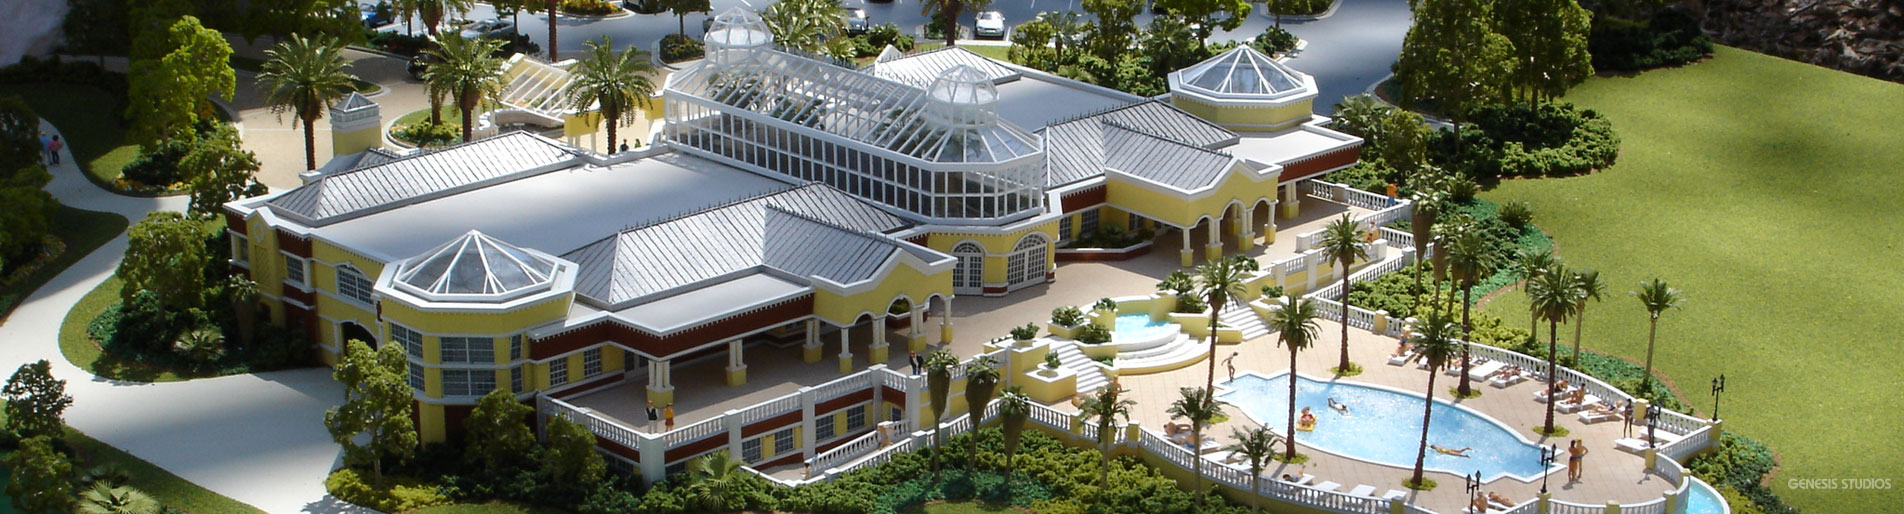 Architectural Scale Model ofThe Conservatory at Hammock Beach Resort in Palm Coast, Florida